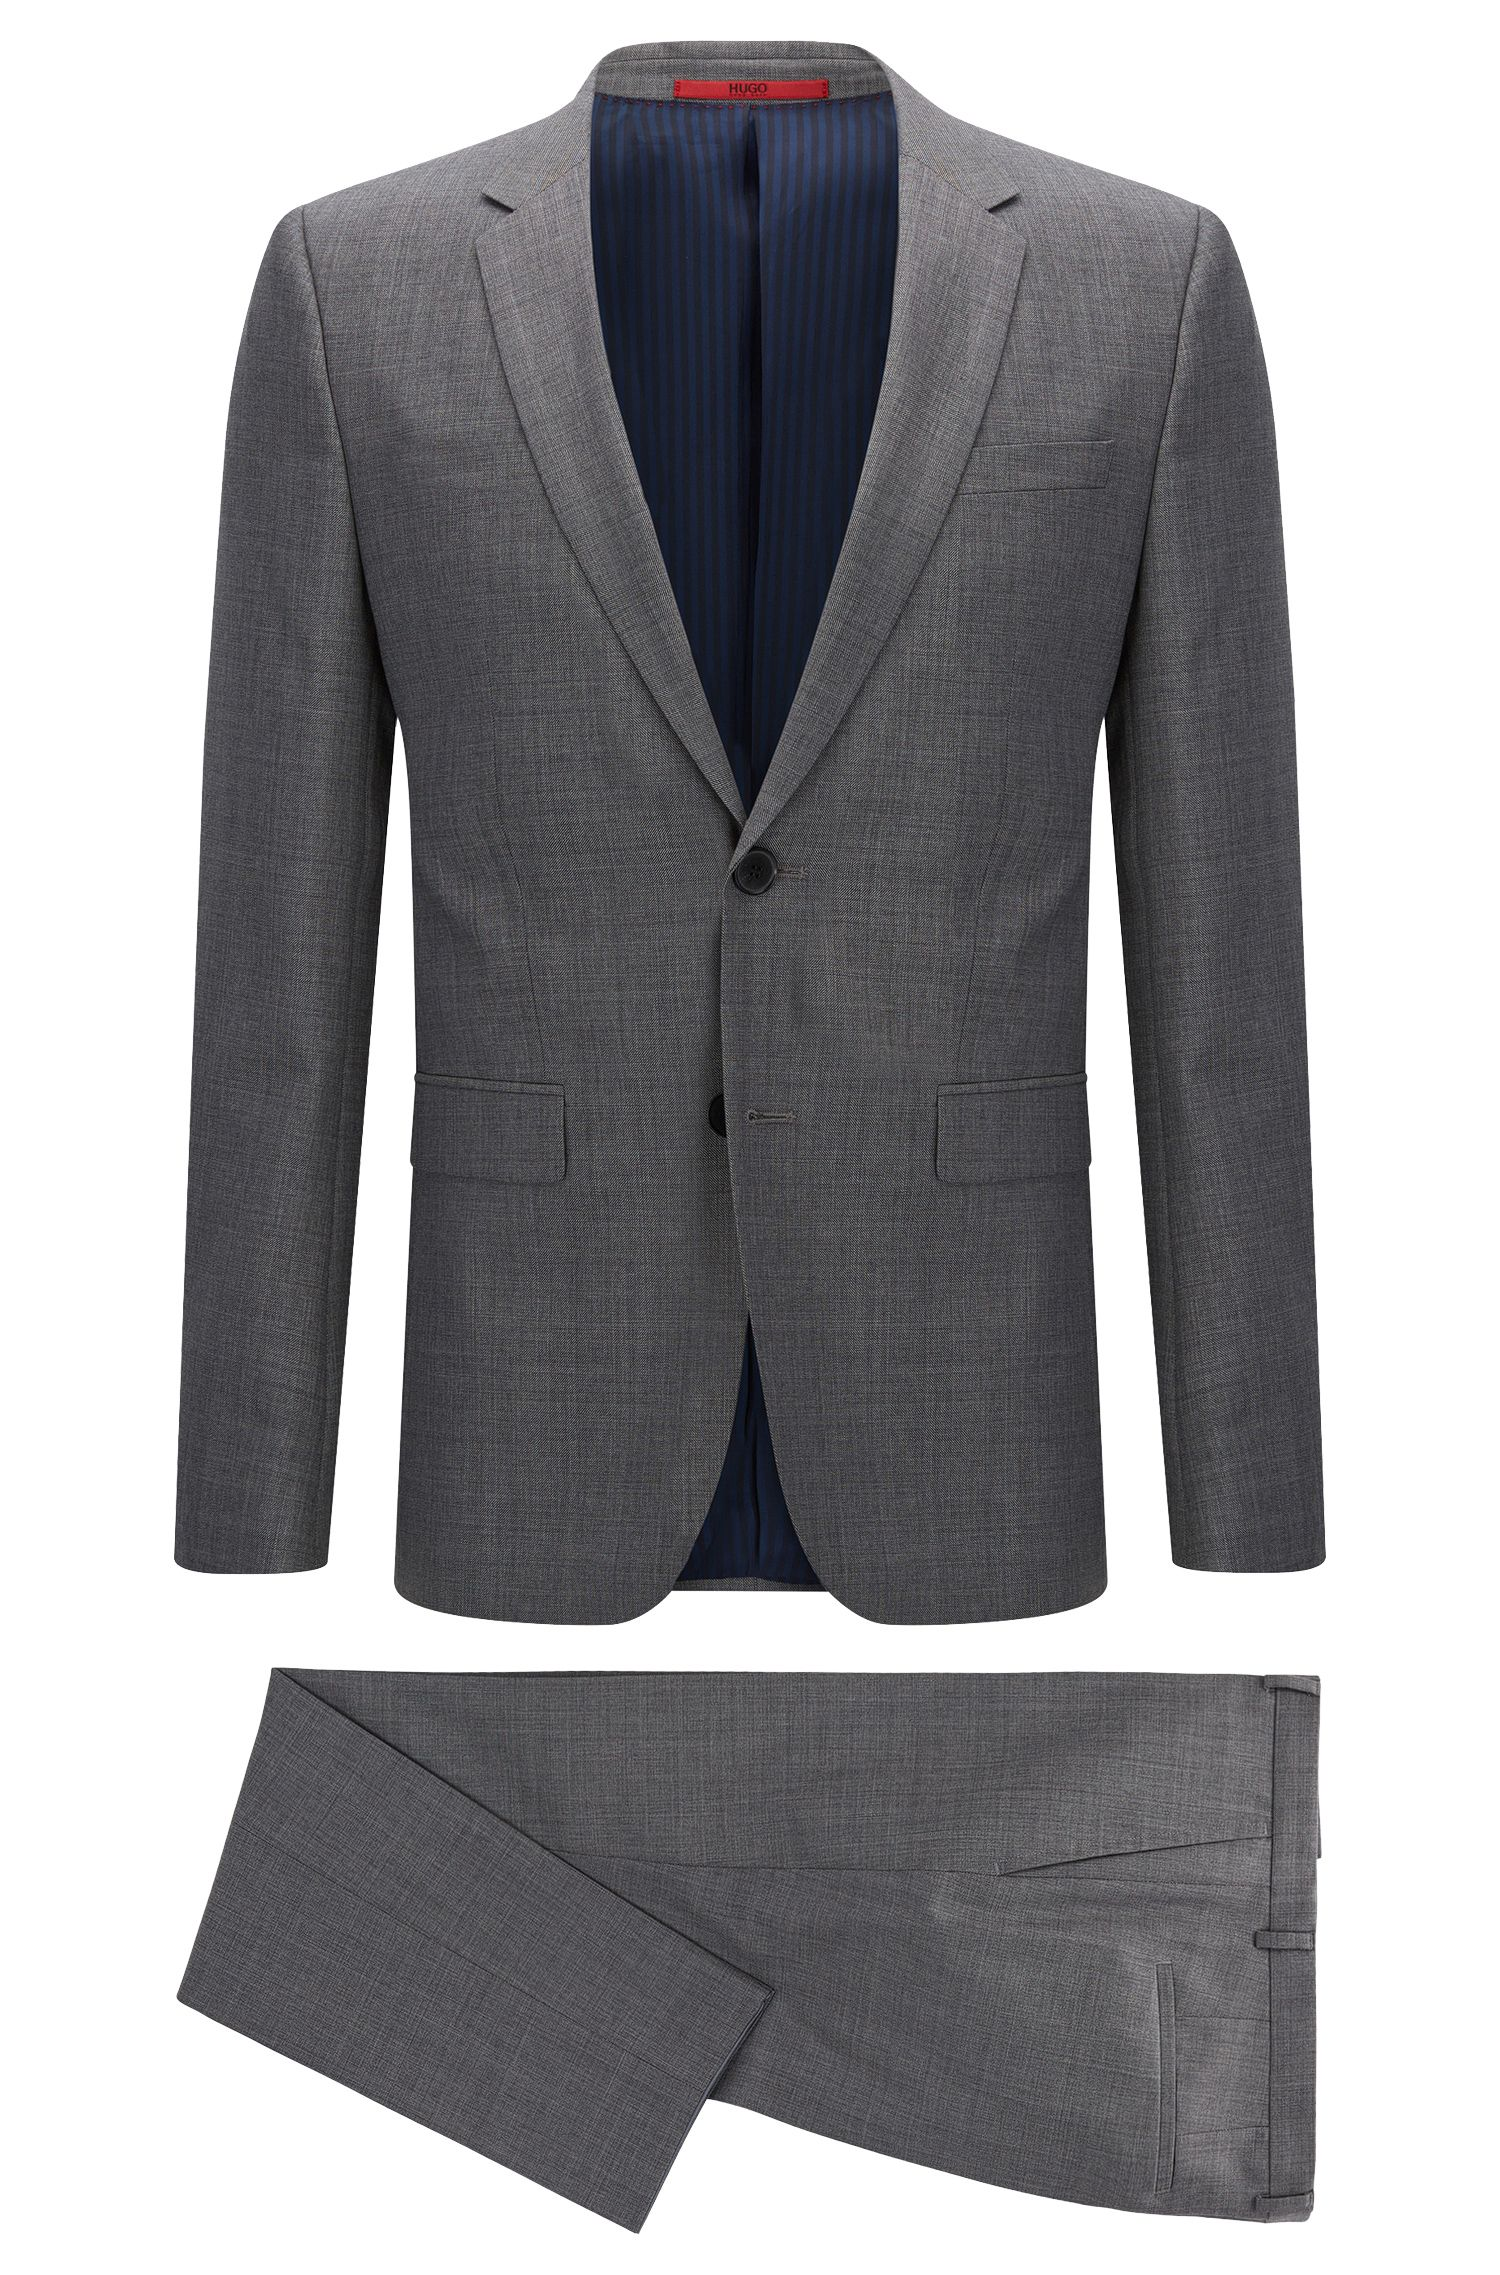 Crosshatch Italian Super 110 Virgin Wool Suit, Slim Fit | Astian/Hets